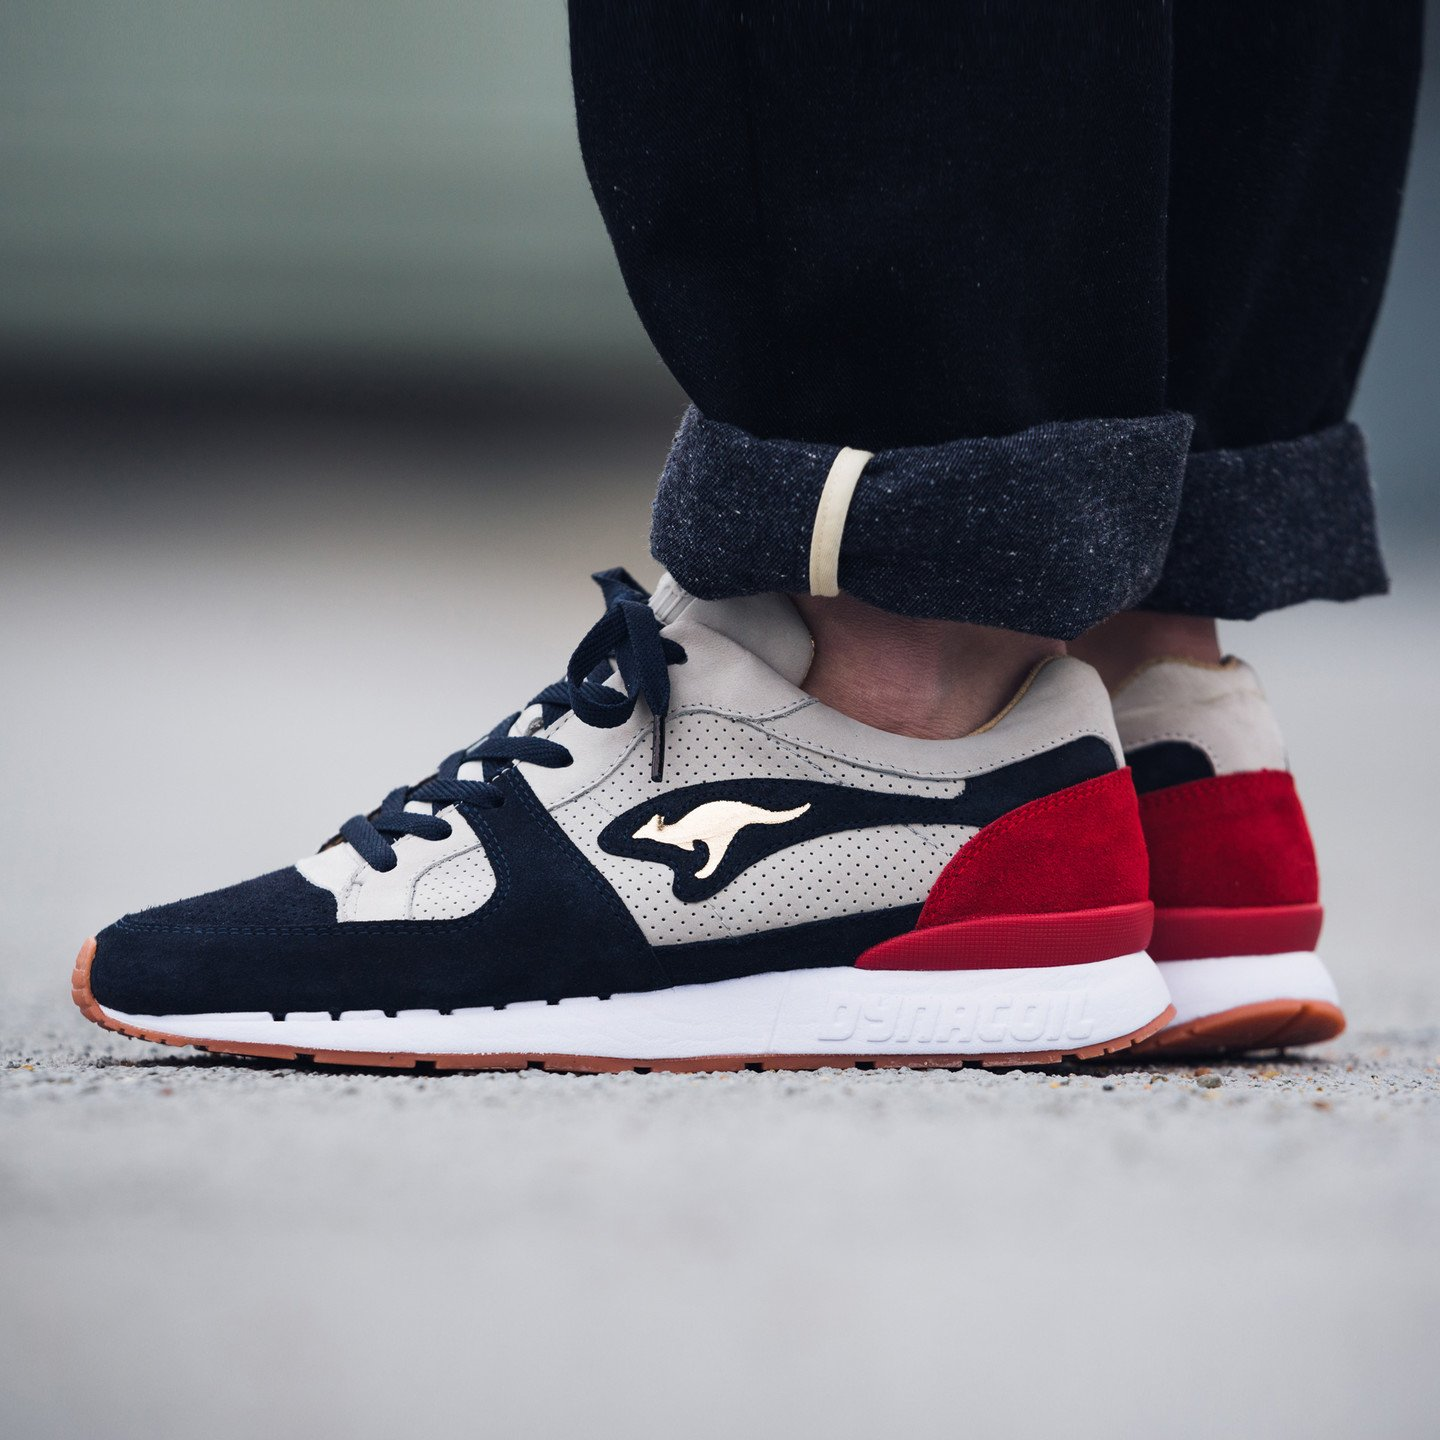 KangaROOS Coil R-1 'Playmaker' - Made in Germany Grey / Navy / Russian Red / Metallic Gold 47224-2083